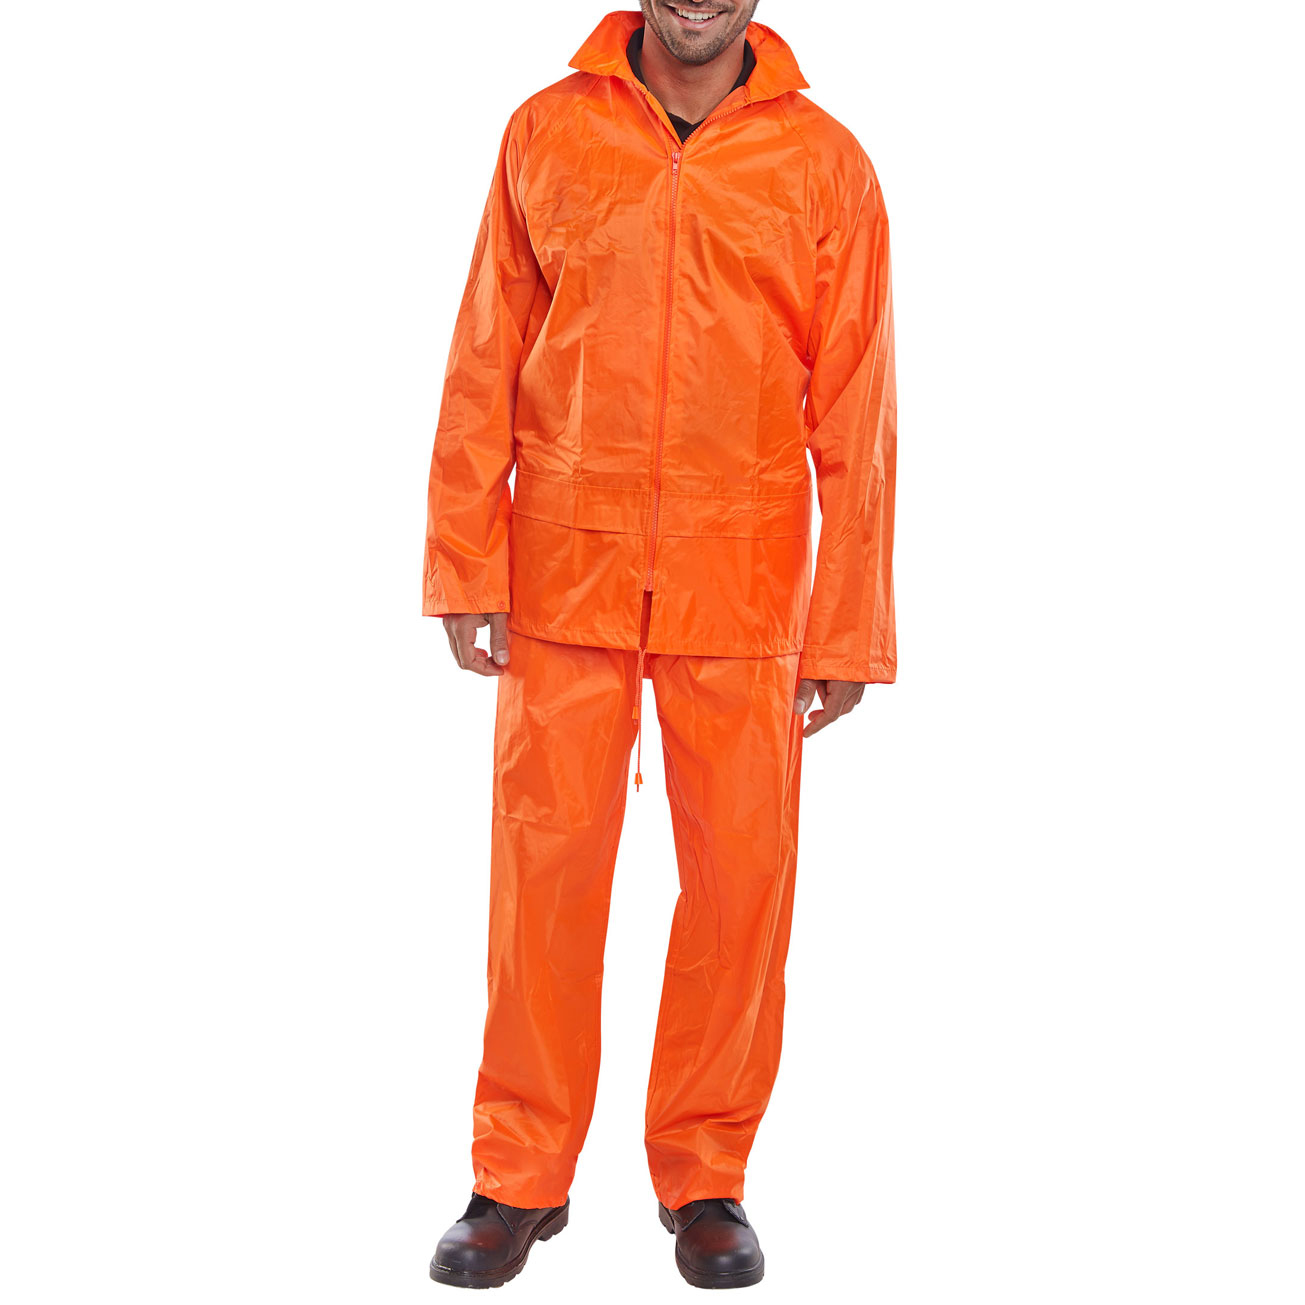 Rainsuits B-Dri Weatherproof Suit Nylon Jacket and Trouser 2XL Orange Ref NBDSORXXL *Up to 3 Day Leadtime*